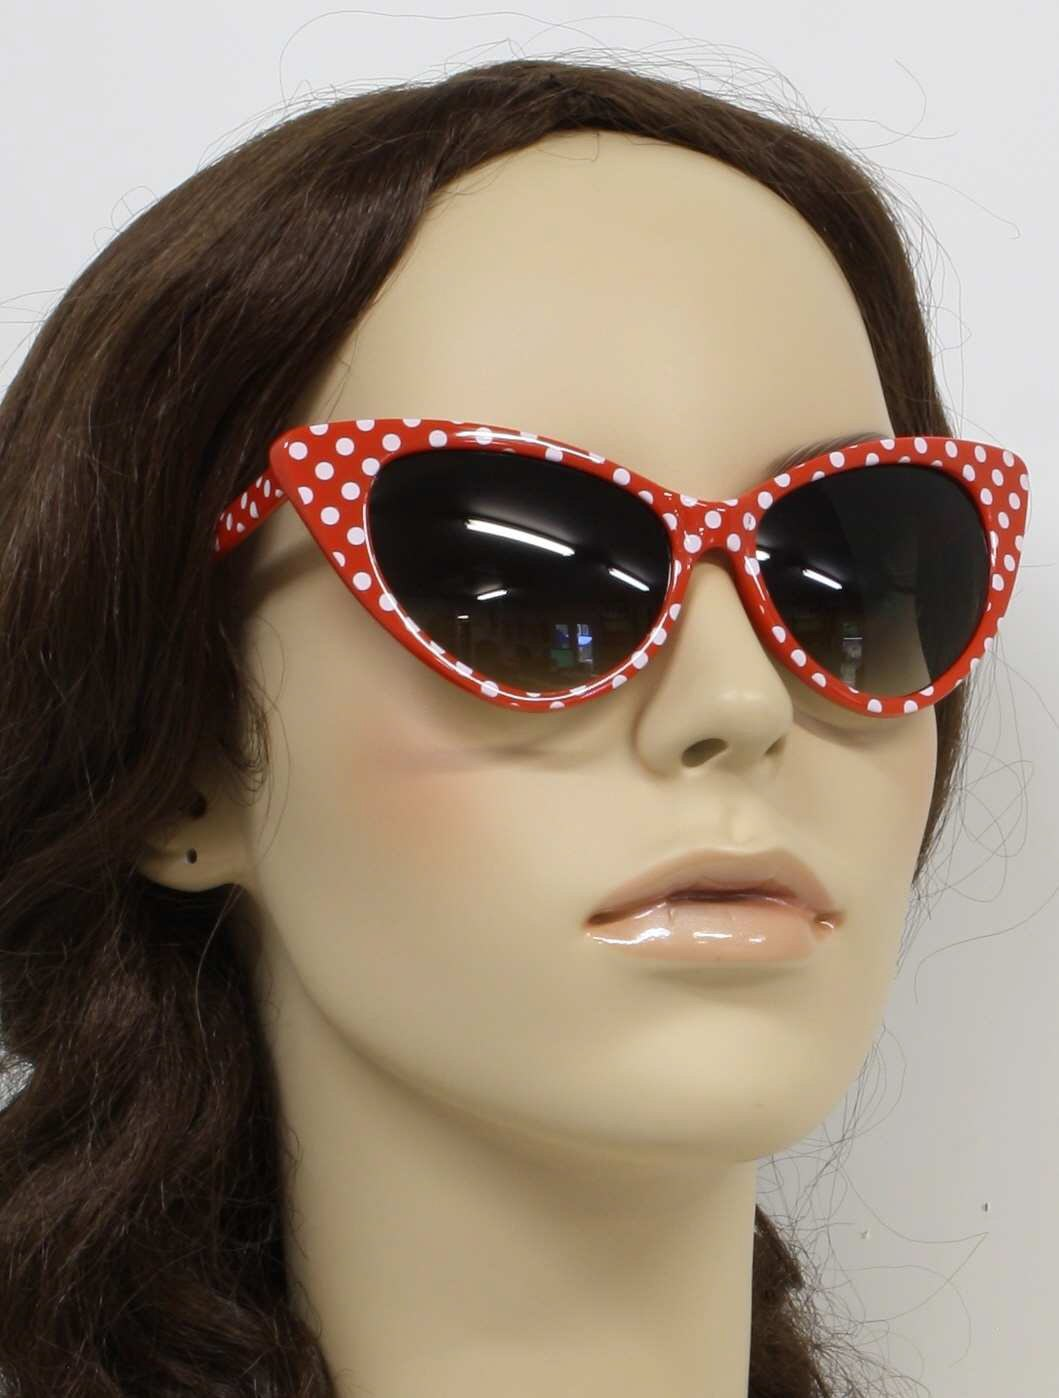 df3429f243 Retro 50s Glasses (Beach Party Style Cat Eye Sunglasses)   50s ...